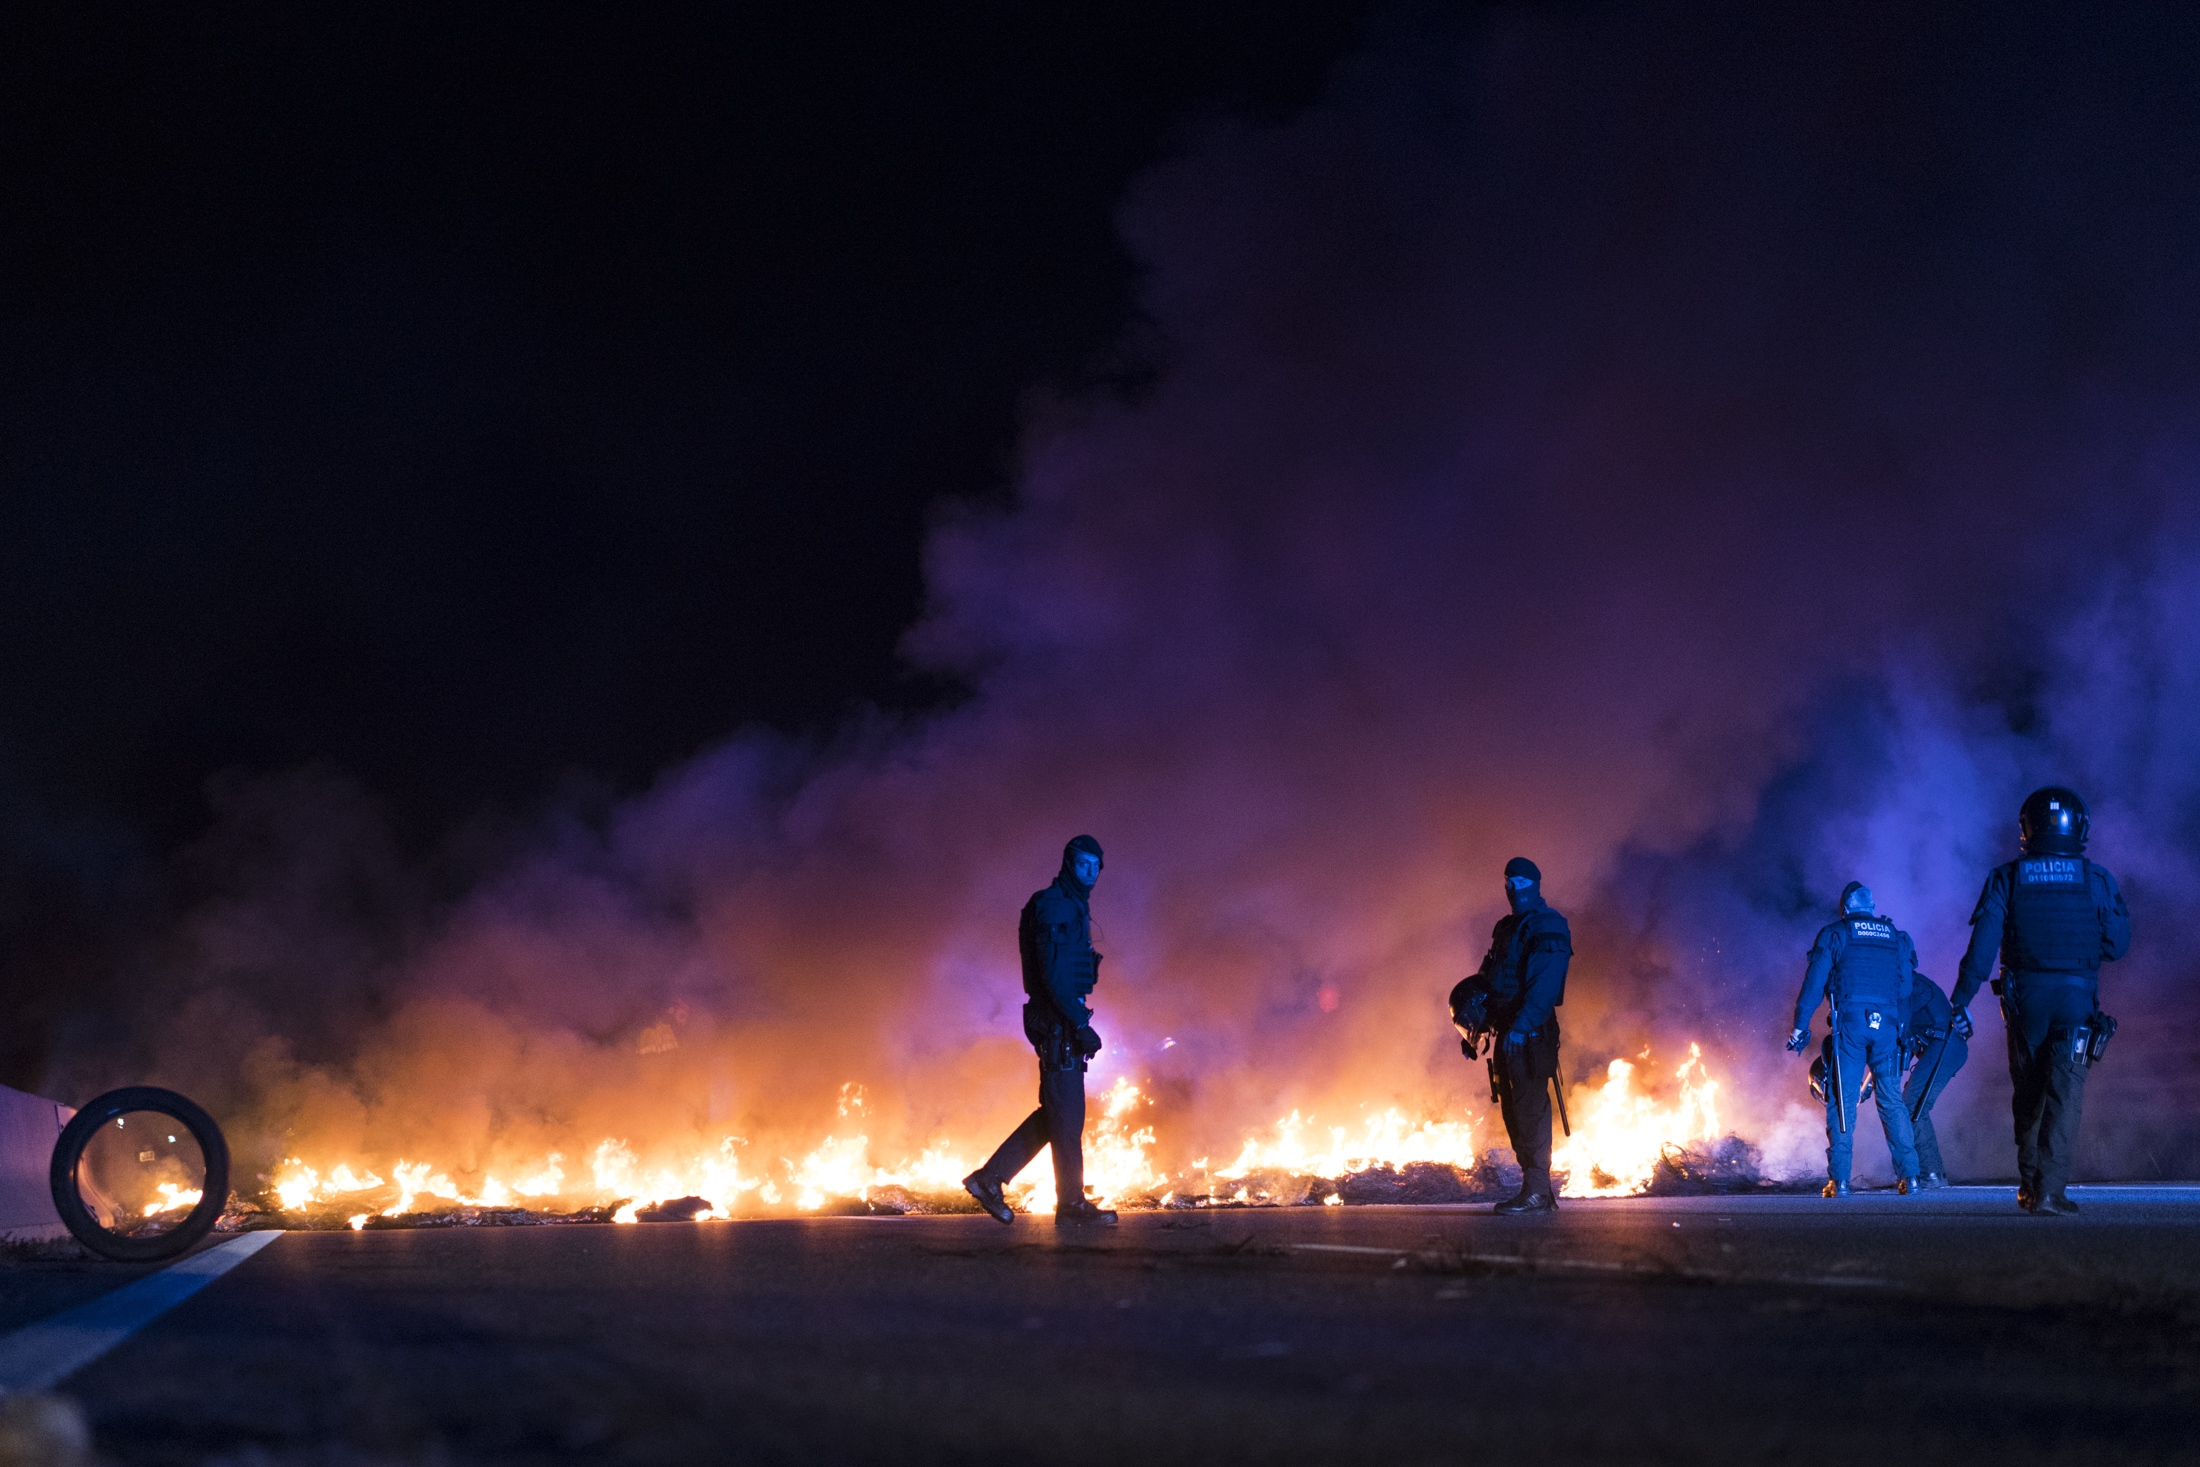 (AP Photo/Daniel Cole) Police officers try to remove burning tires blocking a highway, set by demonstrators protesting the imprisonment of pro-independence political leaders, during a general strike in Catalonia, Spain, Thursday, Feb. 21, 2019.